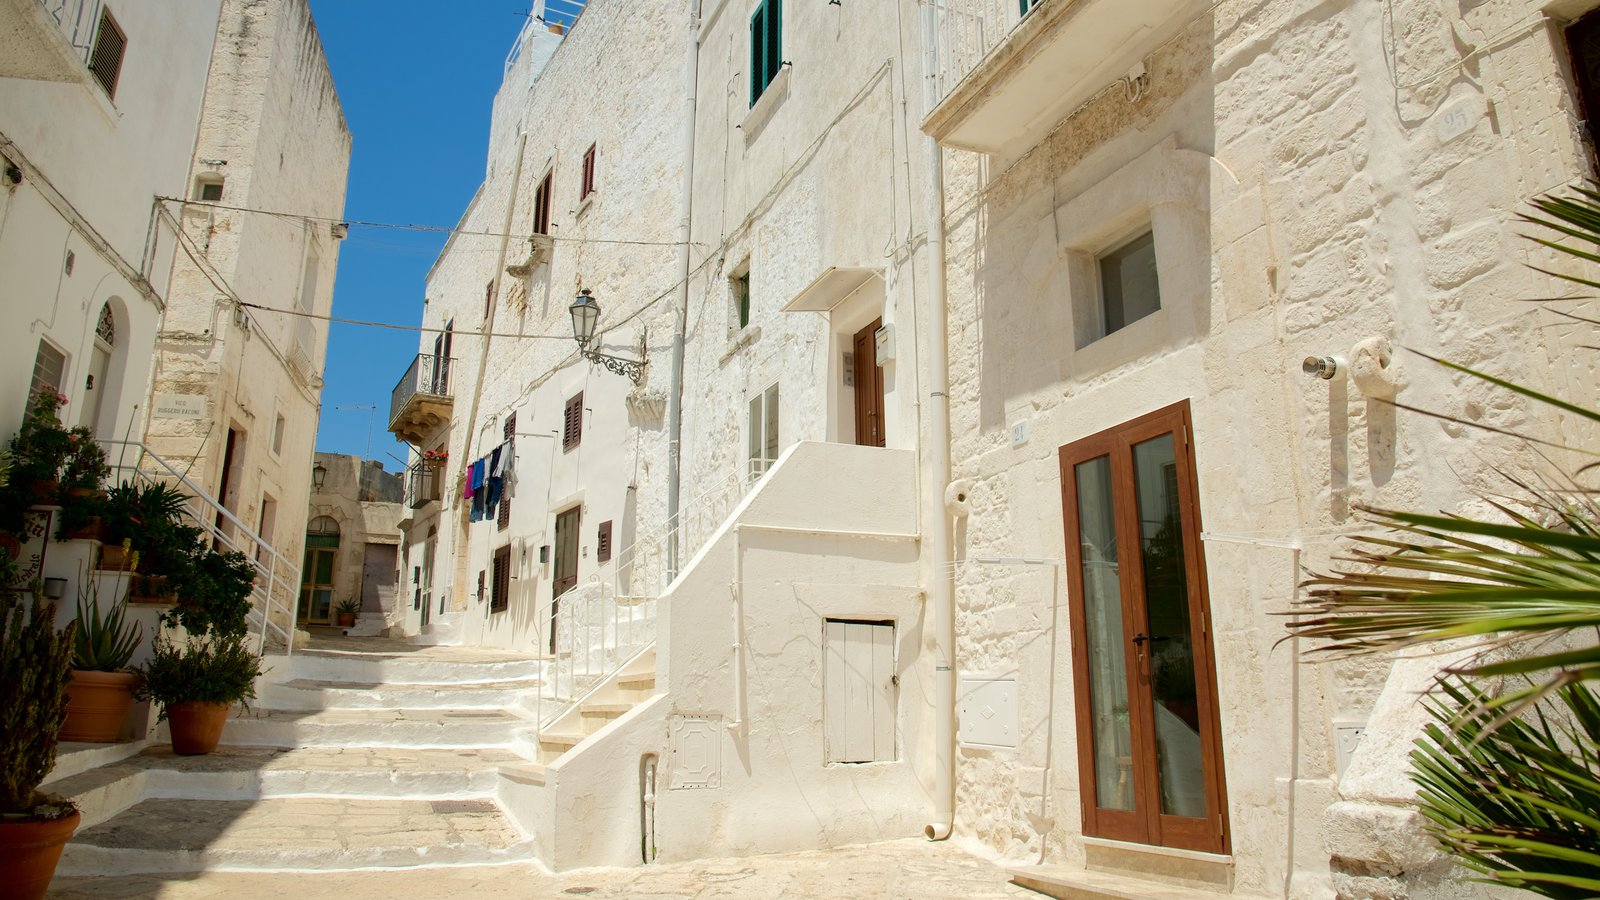 Brindisi which includes heritage architecture